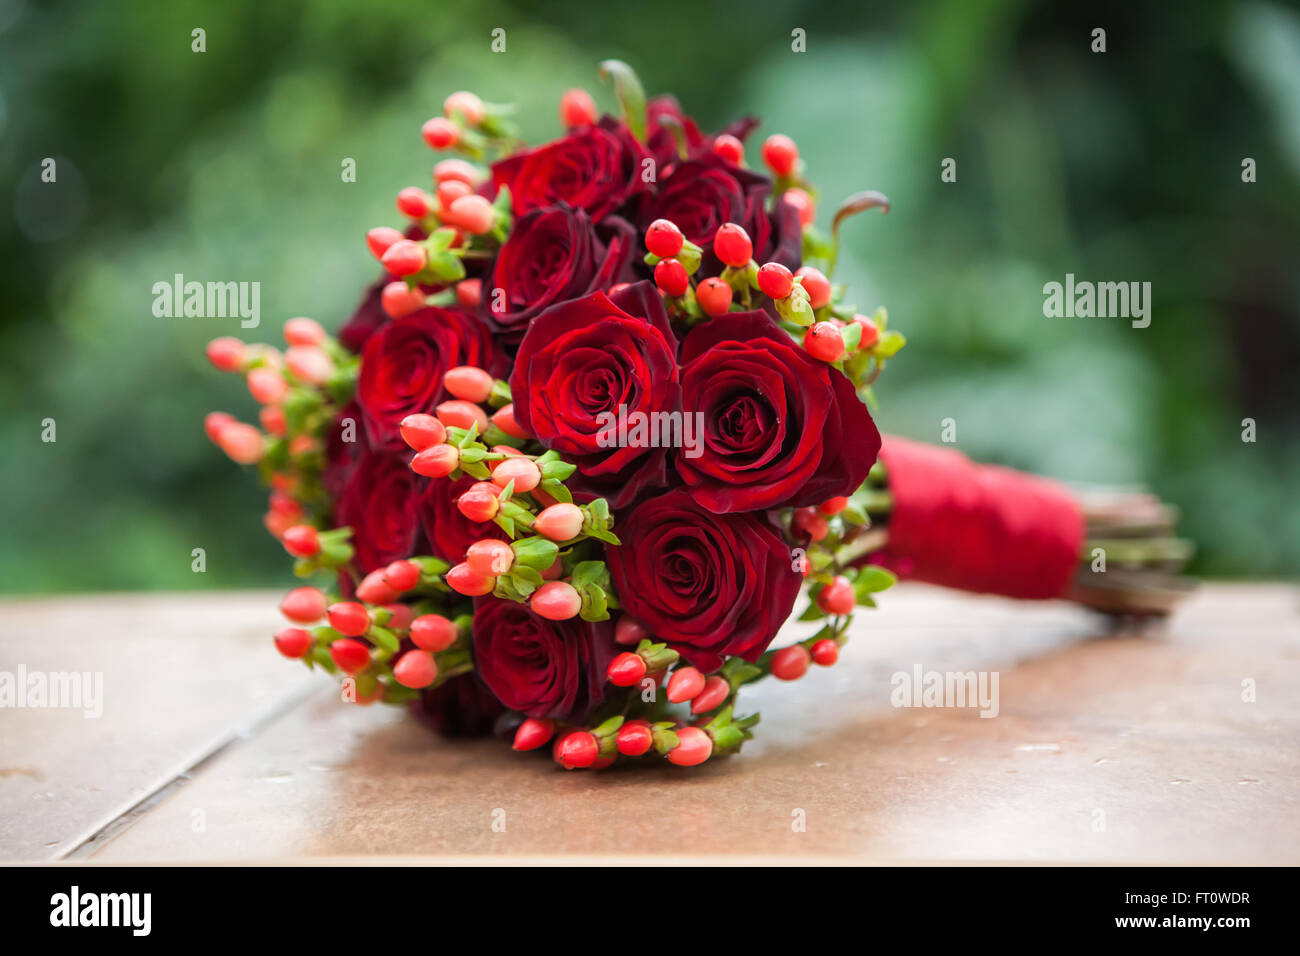 Wedding Bouquet Of Red Roses And Hypericum Tied With A Red Ribbon